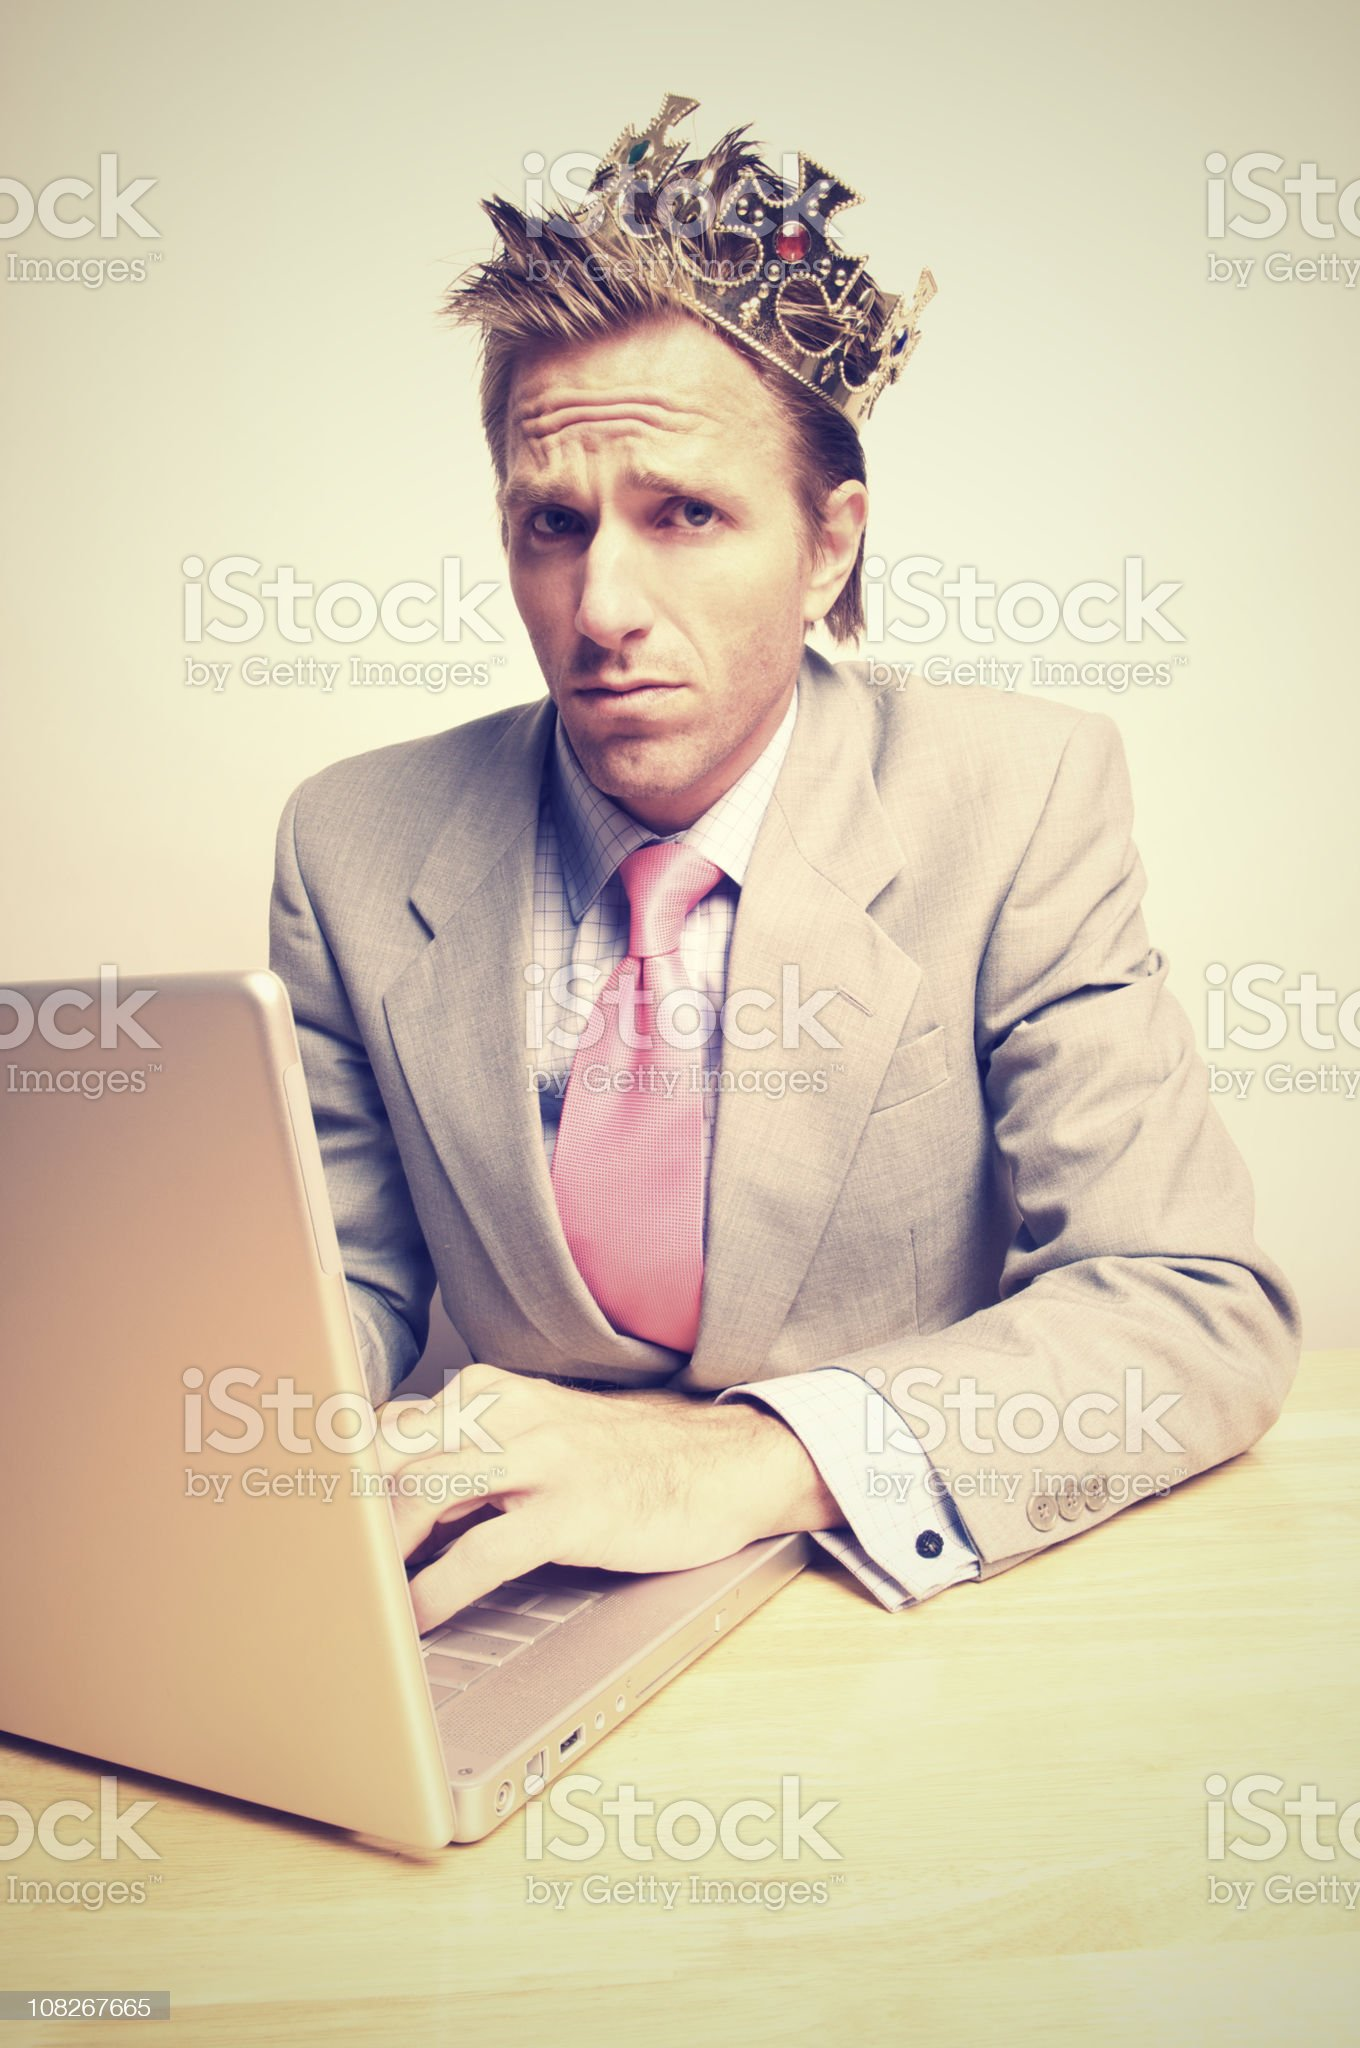 Businessman Wearing Crown and Working on Laptop royalty-free stock photo